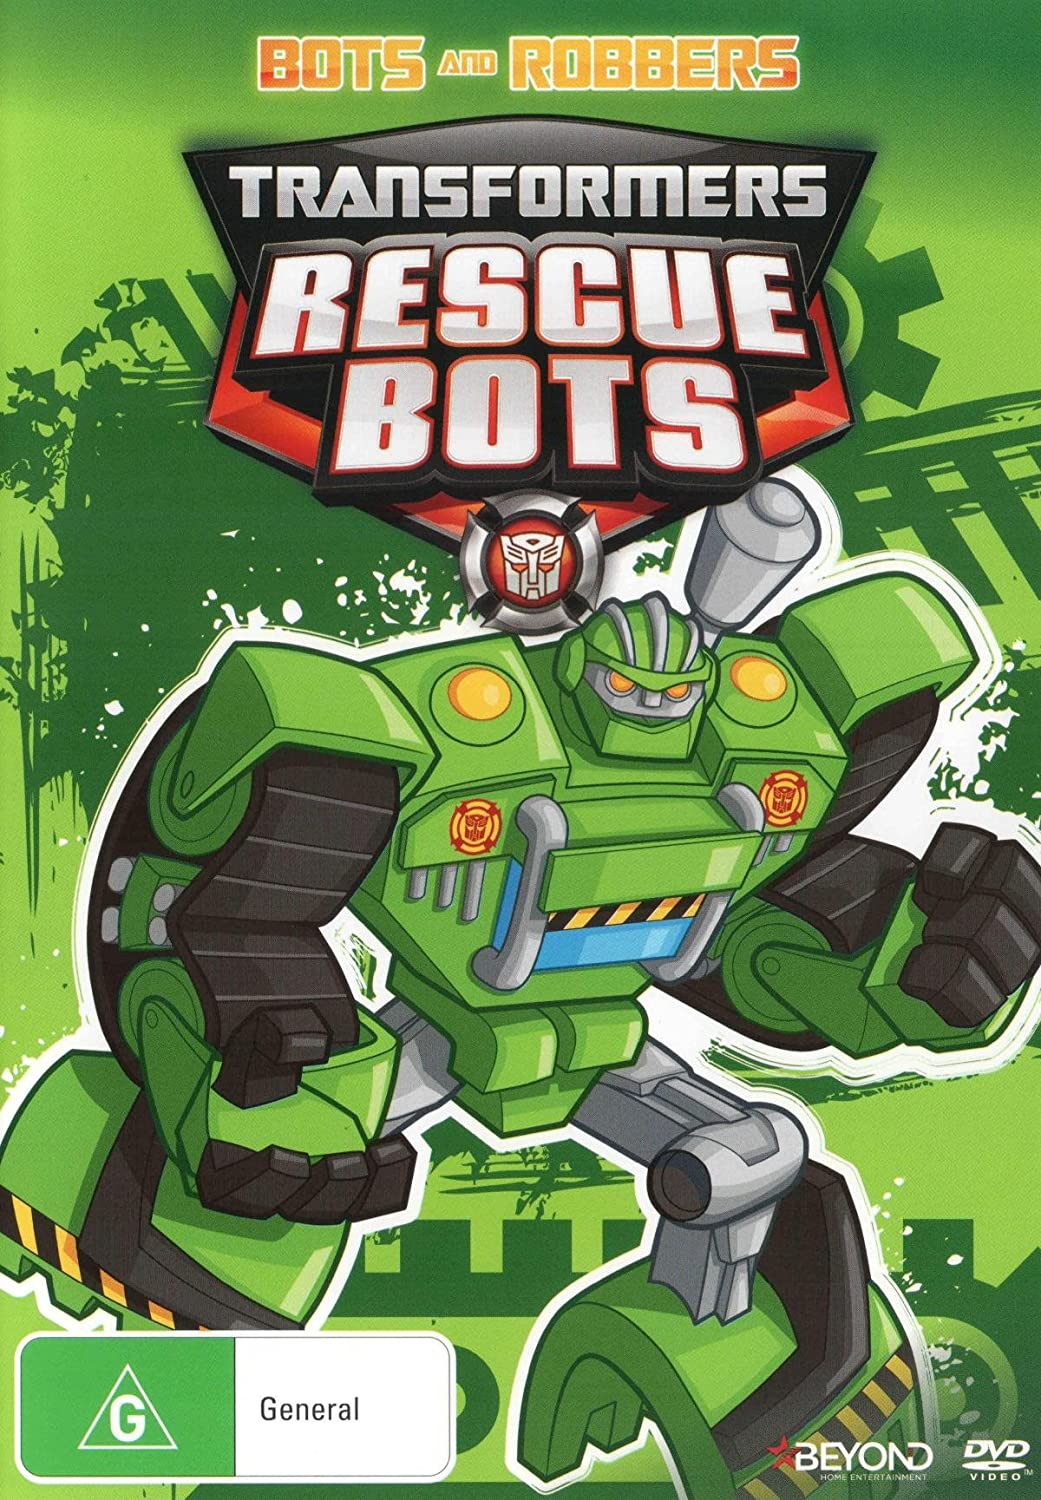 Amazon.com: Transformers Rescue Bots Bots and Robbers DVD ...